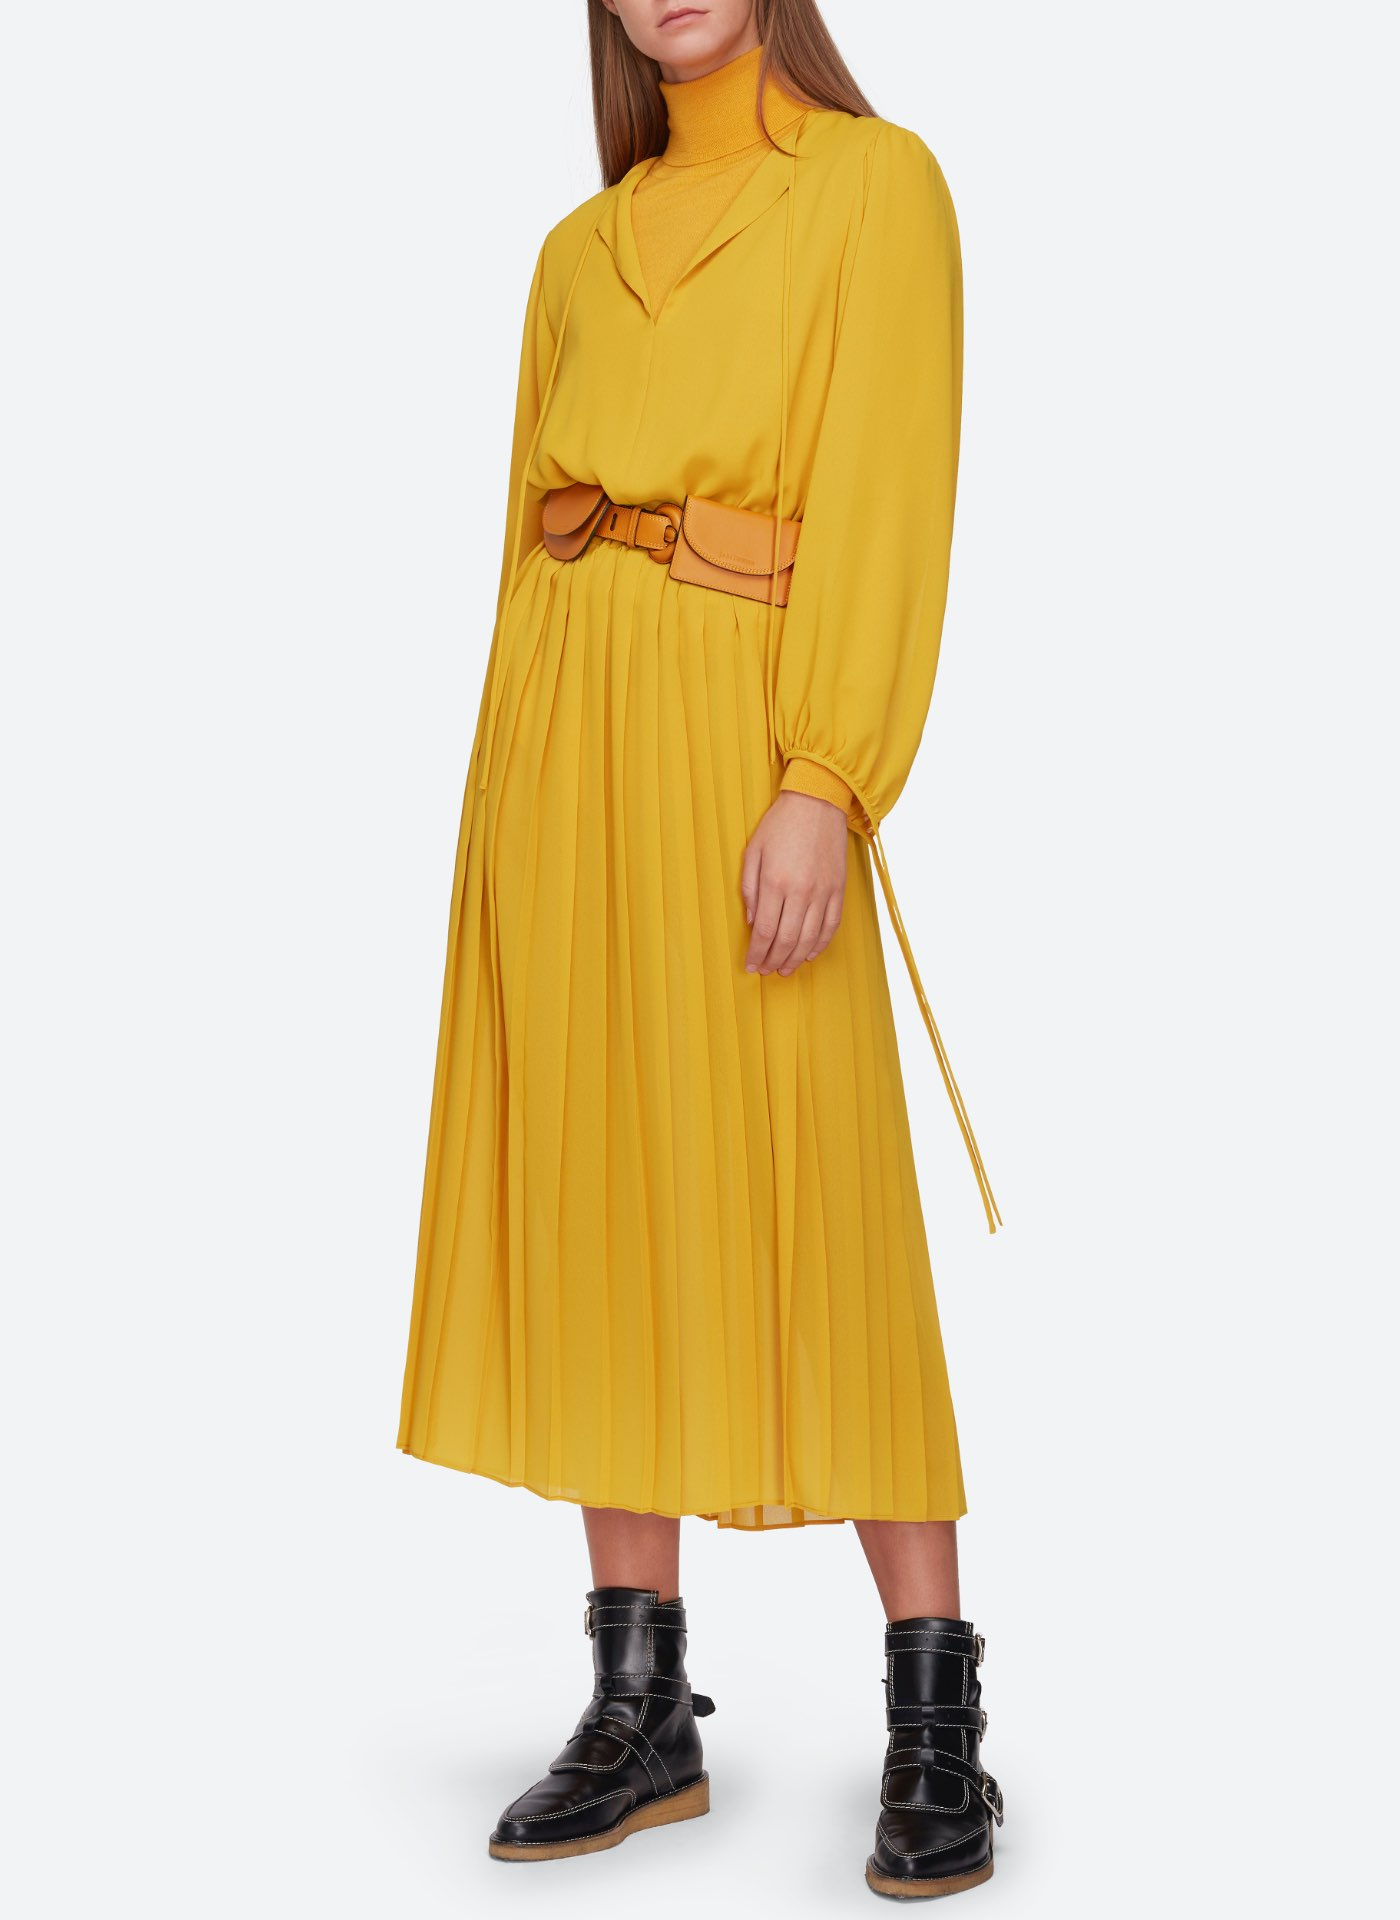 Womenswear model wearing a bright yellow dress with a light brown leather J&M belt and black leather shoes